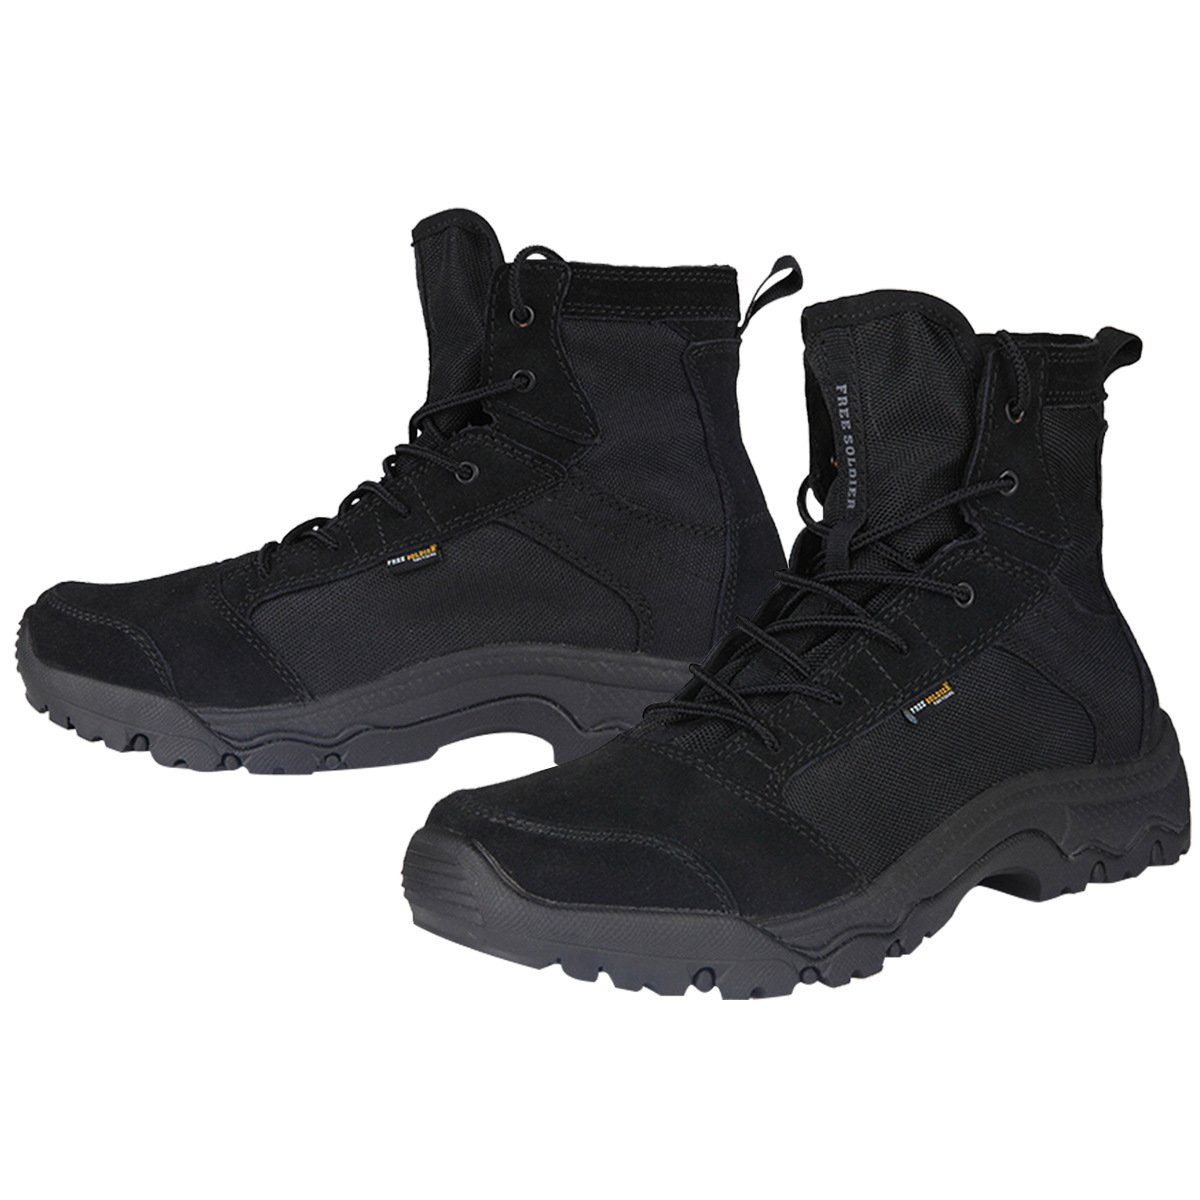 FREE SOLDIER Desert Boots Lightweight Lace up Jungle Boots Military Breathable Shoes Suede Leather Tactical Boots(Black 12)